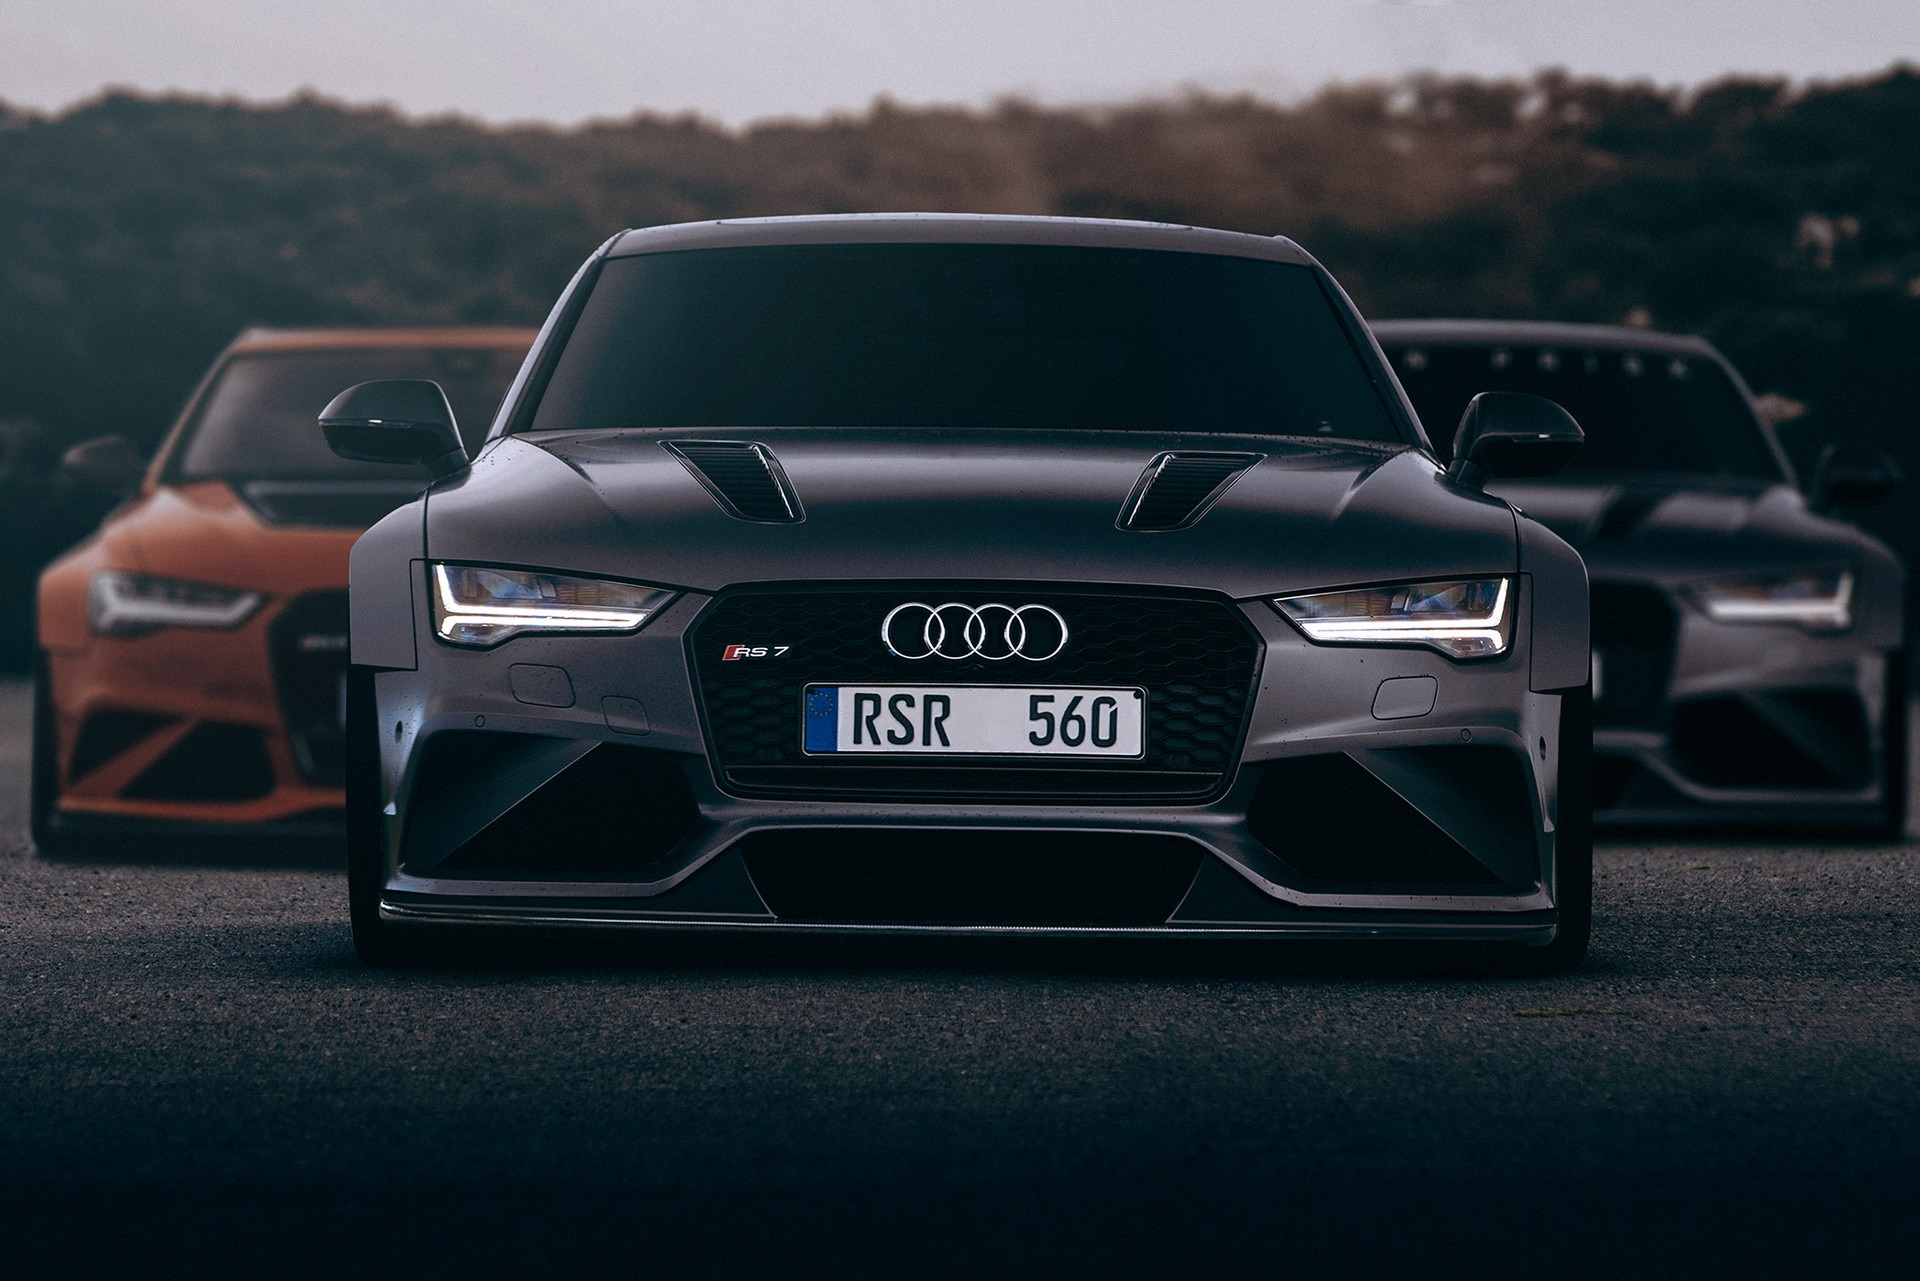 Widebody Audis The Sexiest Cars On Roads